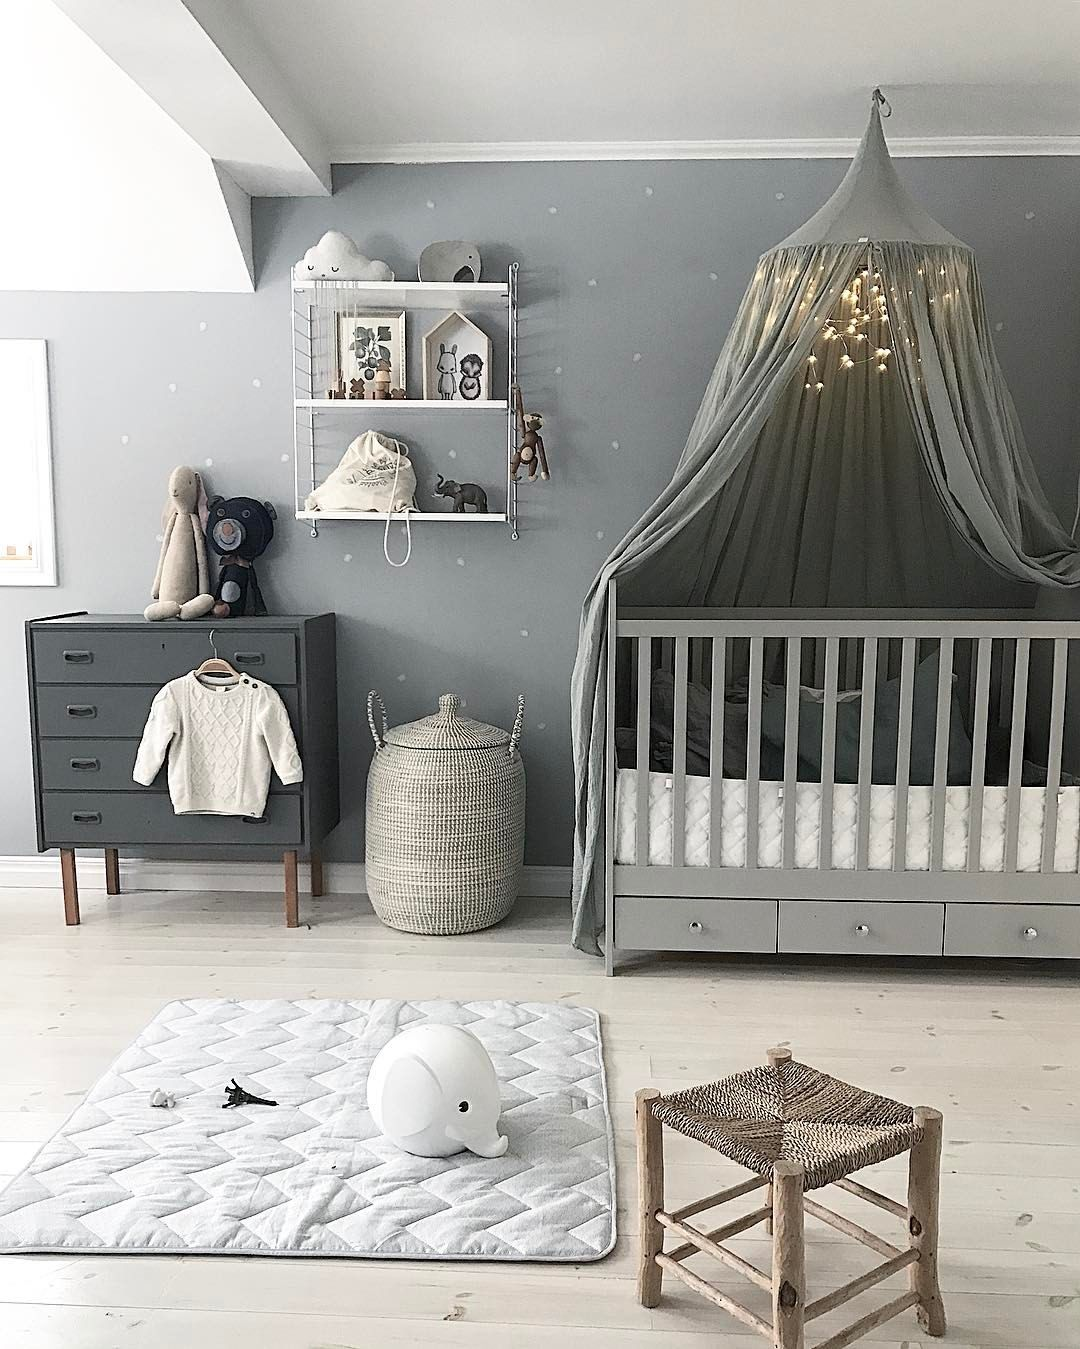 Bedroom Design Ideas Bohemian Bedroom Easy Chairs Bedroom Ceiling Photo Sophisticated Bedroom Colors: 18 Luxurious Pink Gray Nursery Room